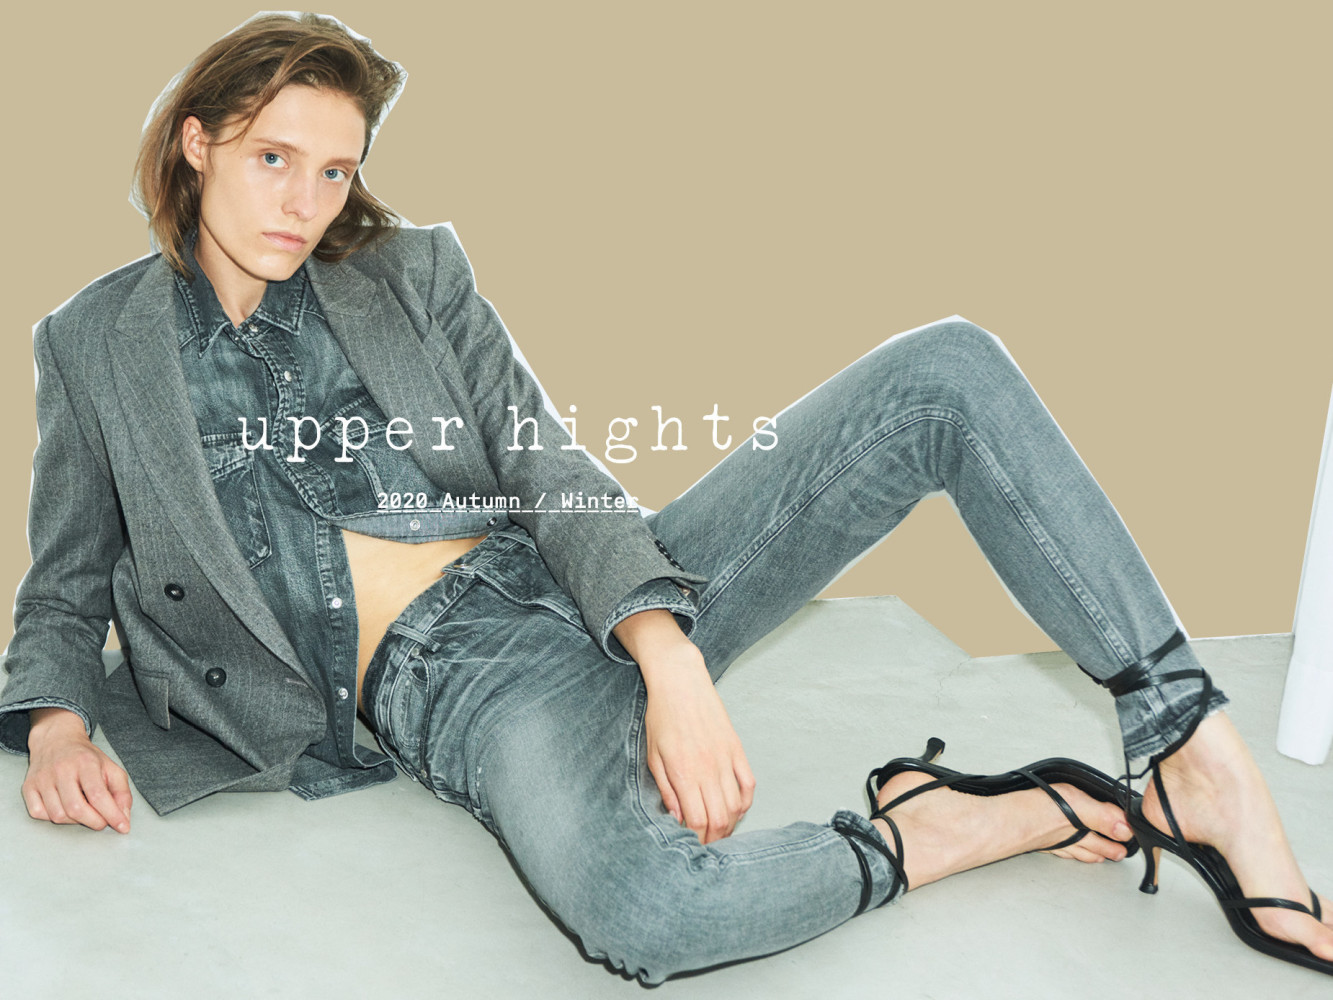 JO CAMPAIGN FOR SUPPER HIGHTS FW 20